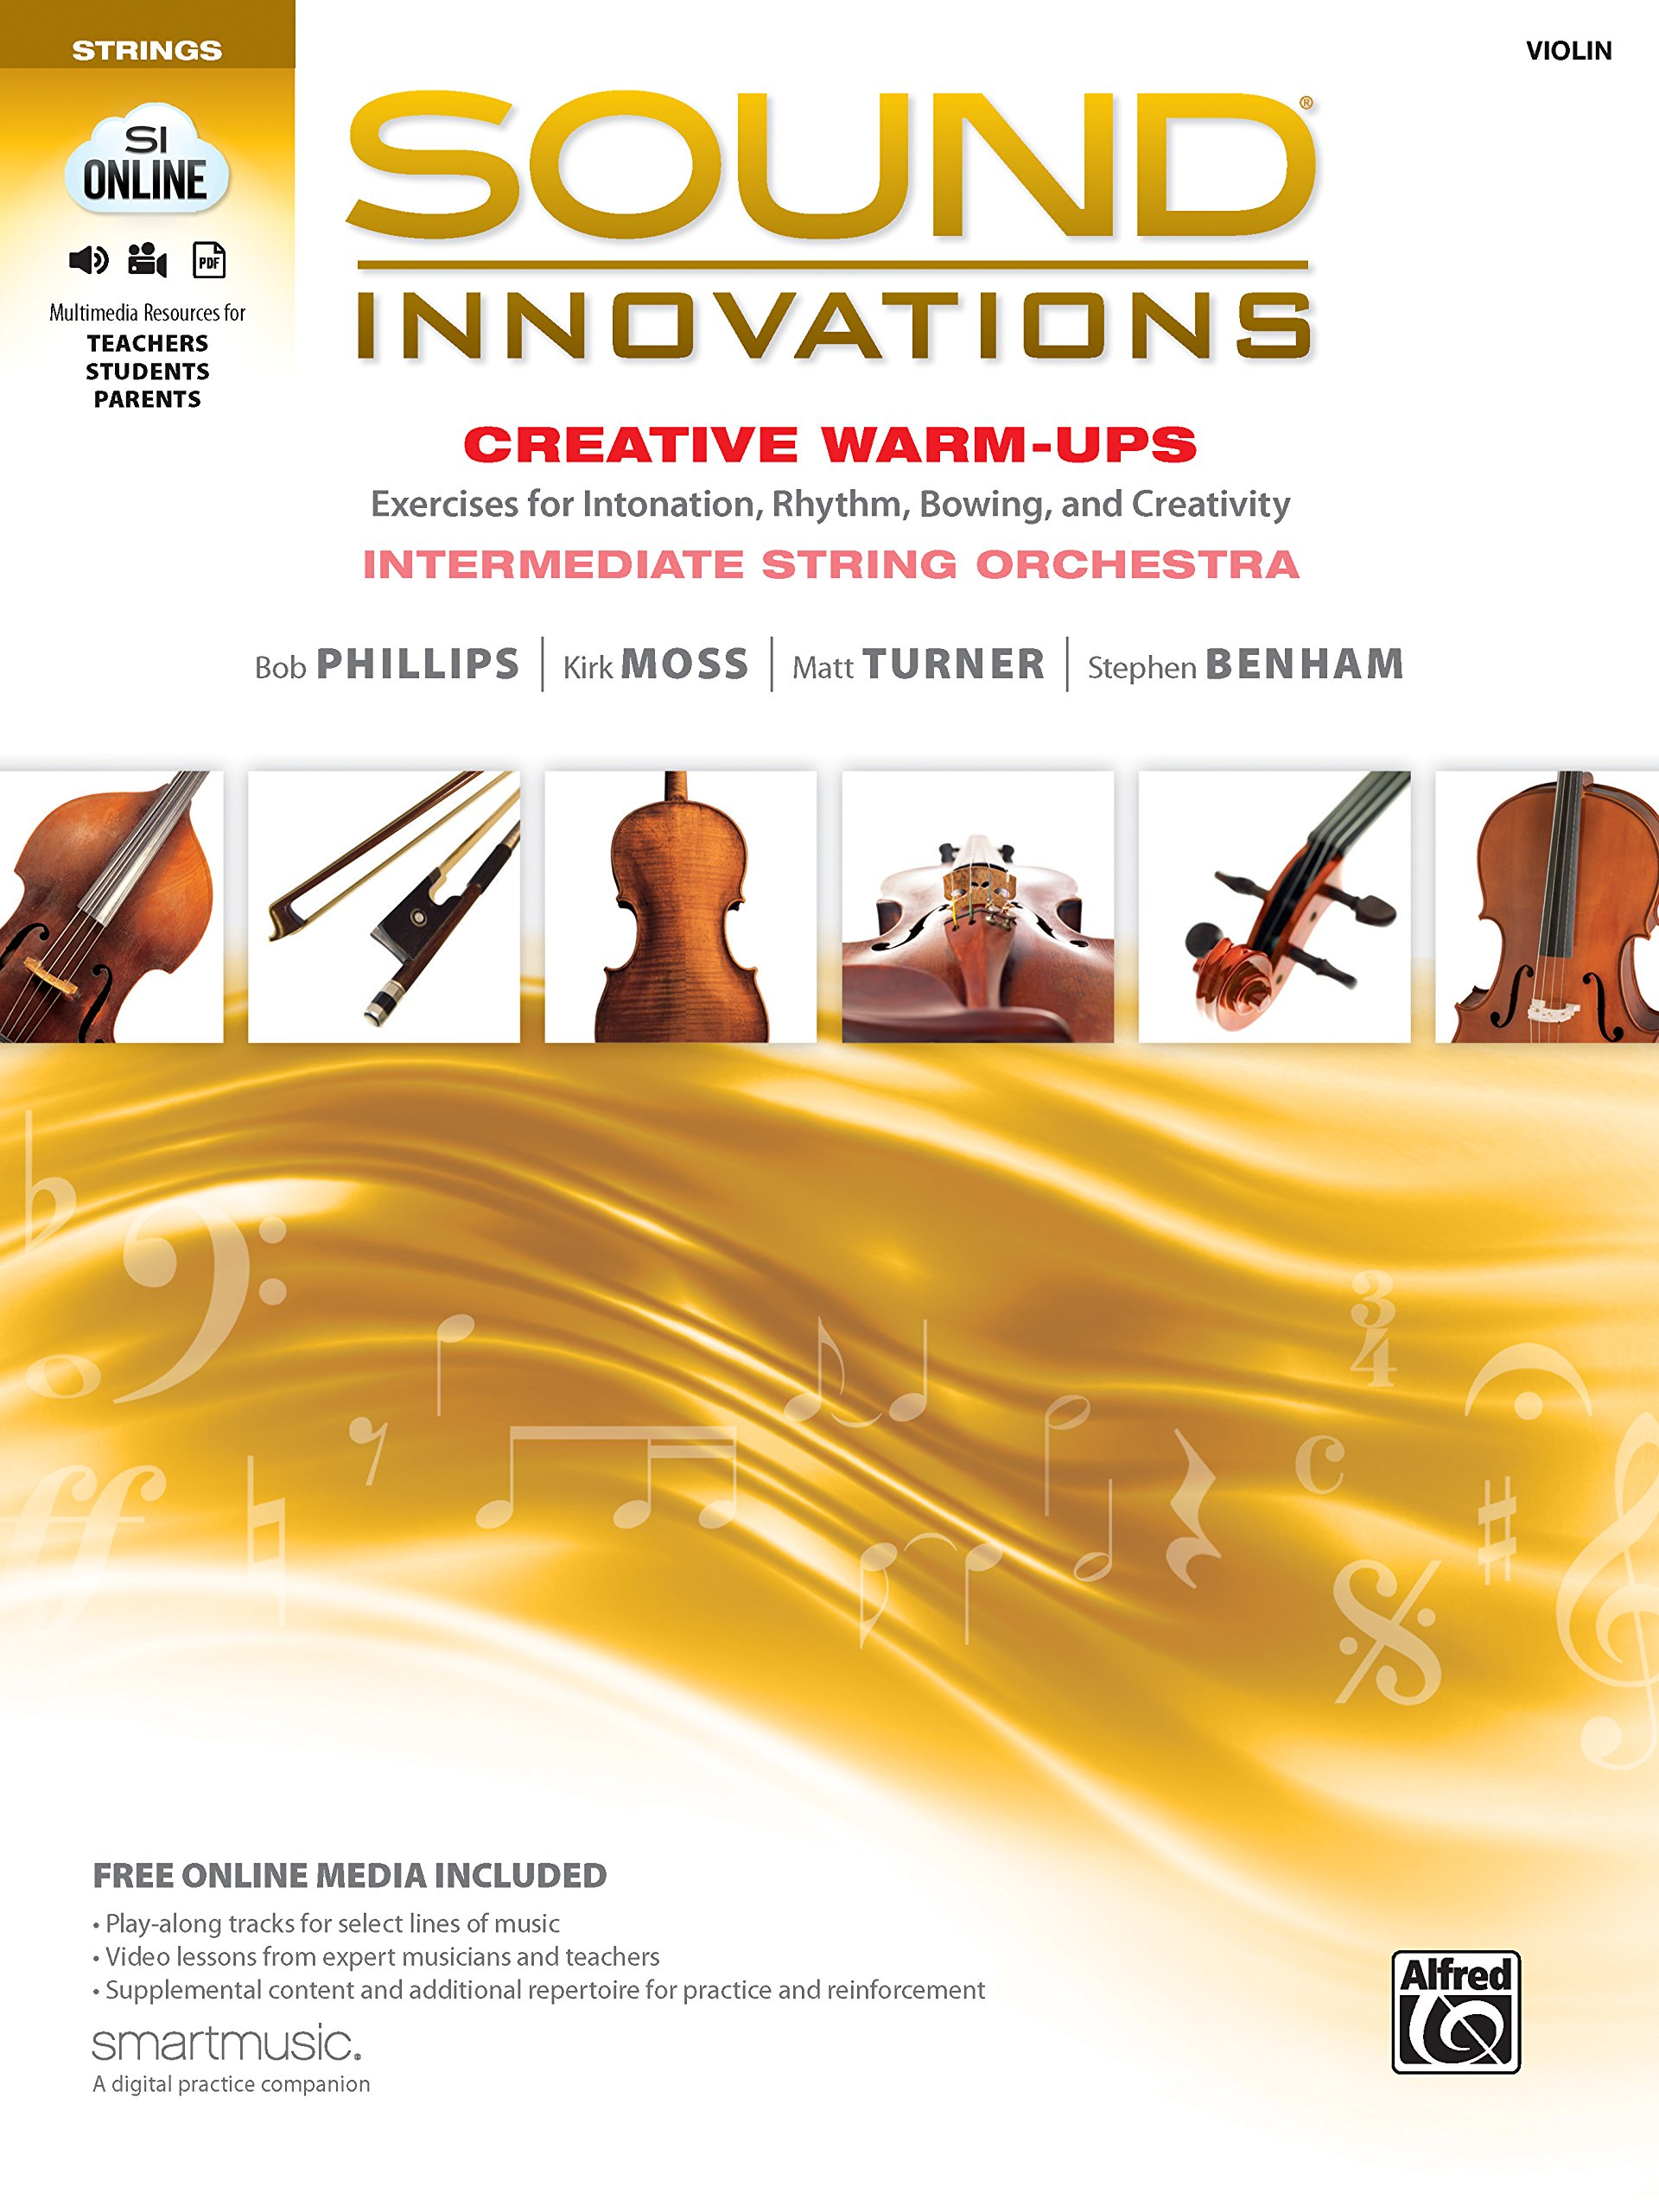 Download Sound Innovations for String Orchestra -- Creative Warm-Ups: Exercises for Intonation, Rhythm, Bowing, and Creativity for Intermediate String Orchestra (Violin) pdf